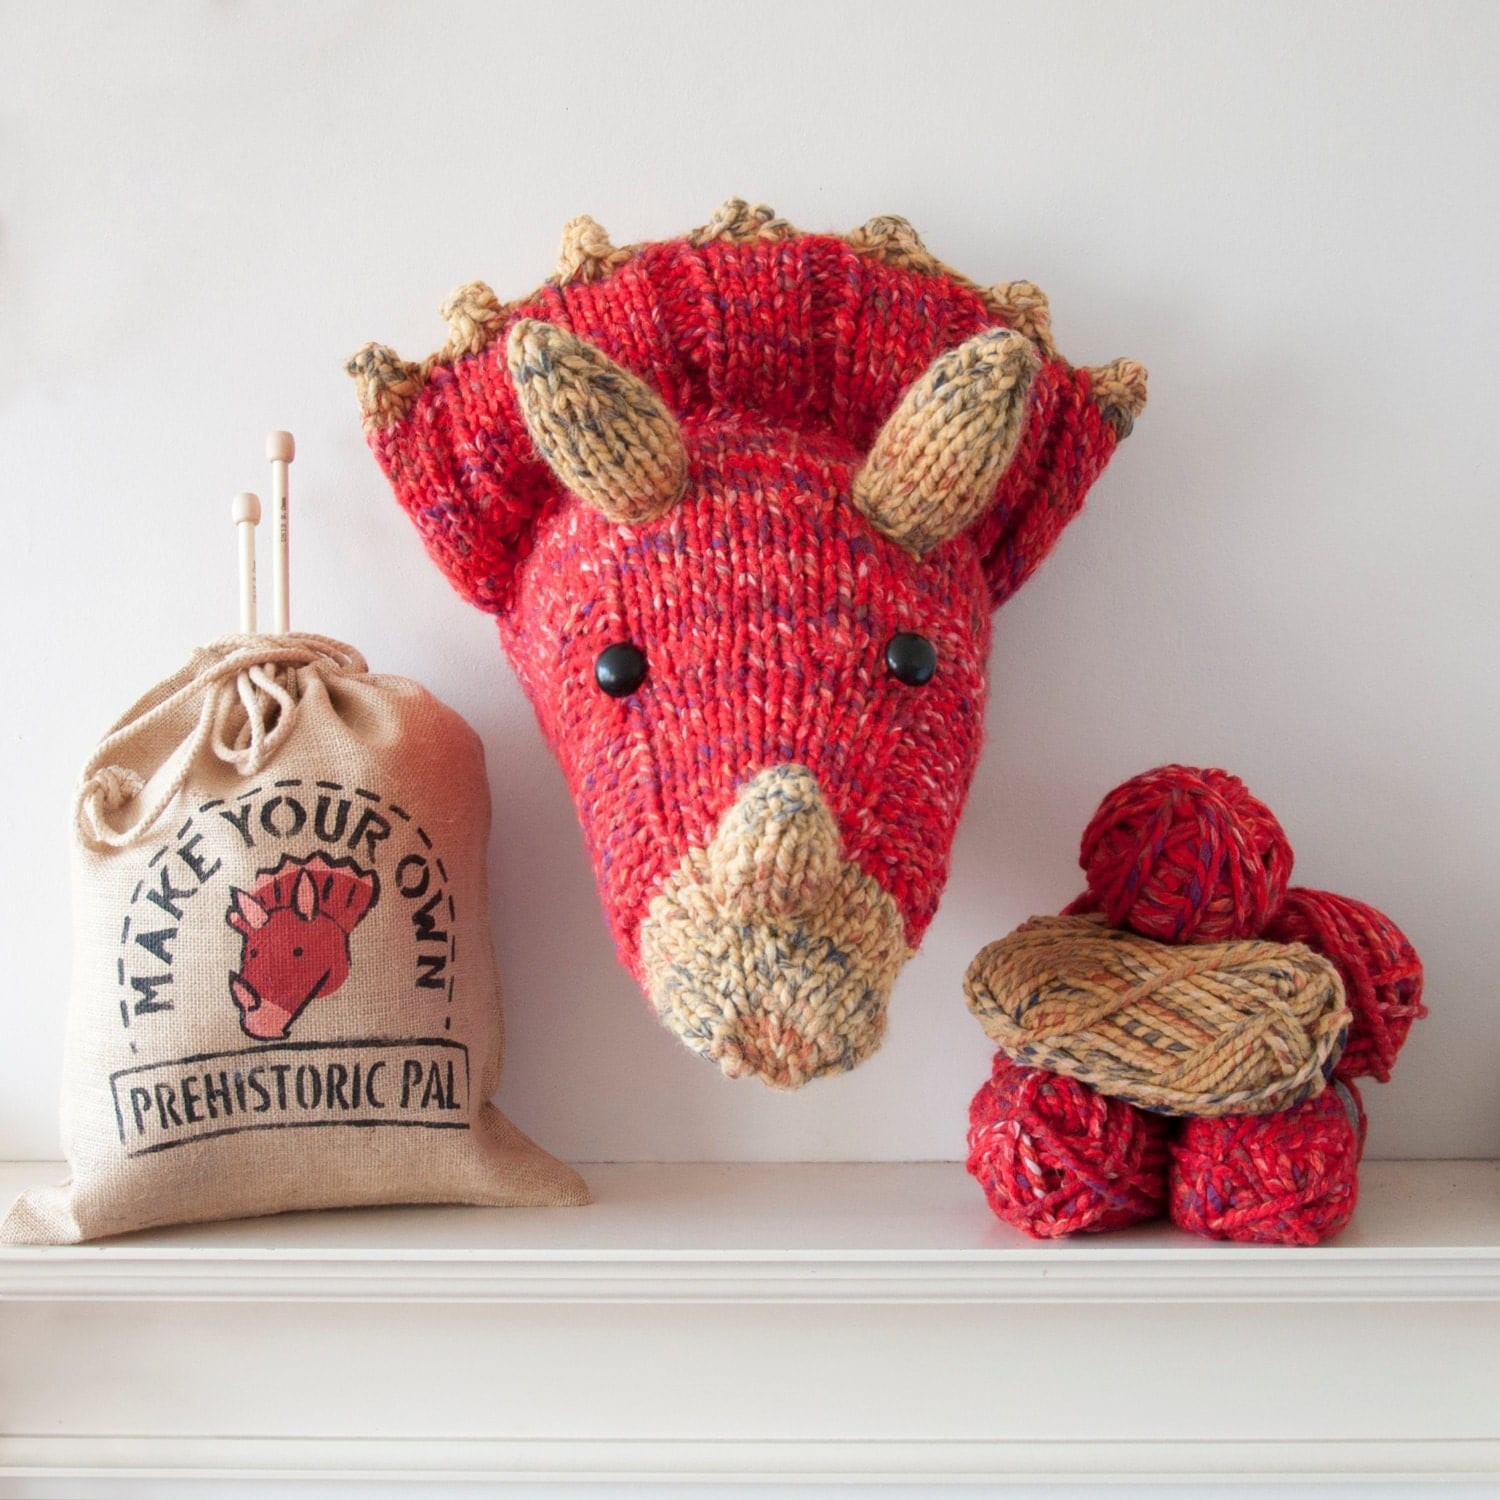 Beginner Knitting Kits Canada : Faux red triceratops knitting kit make your own